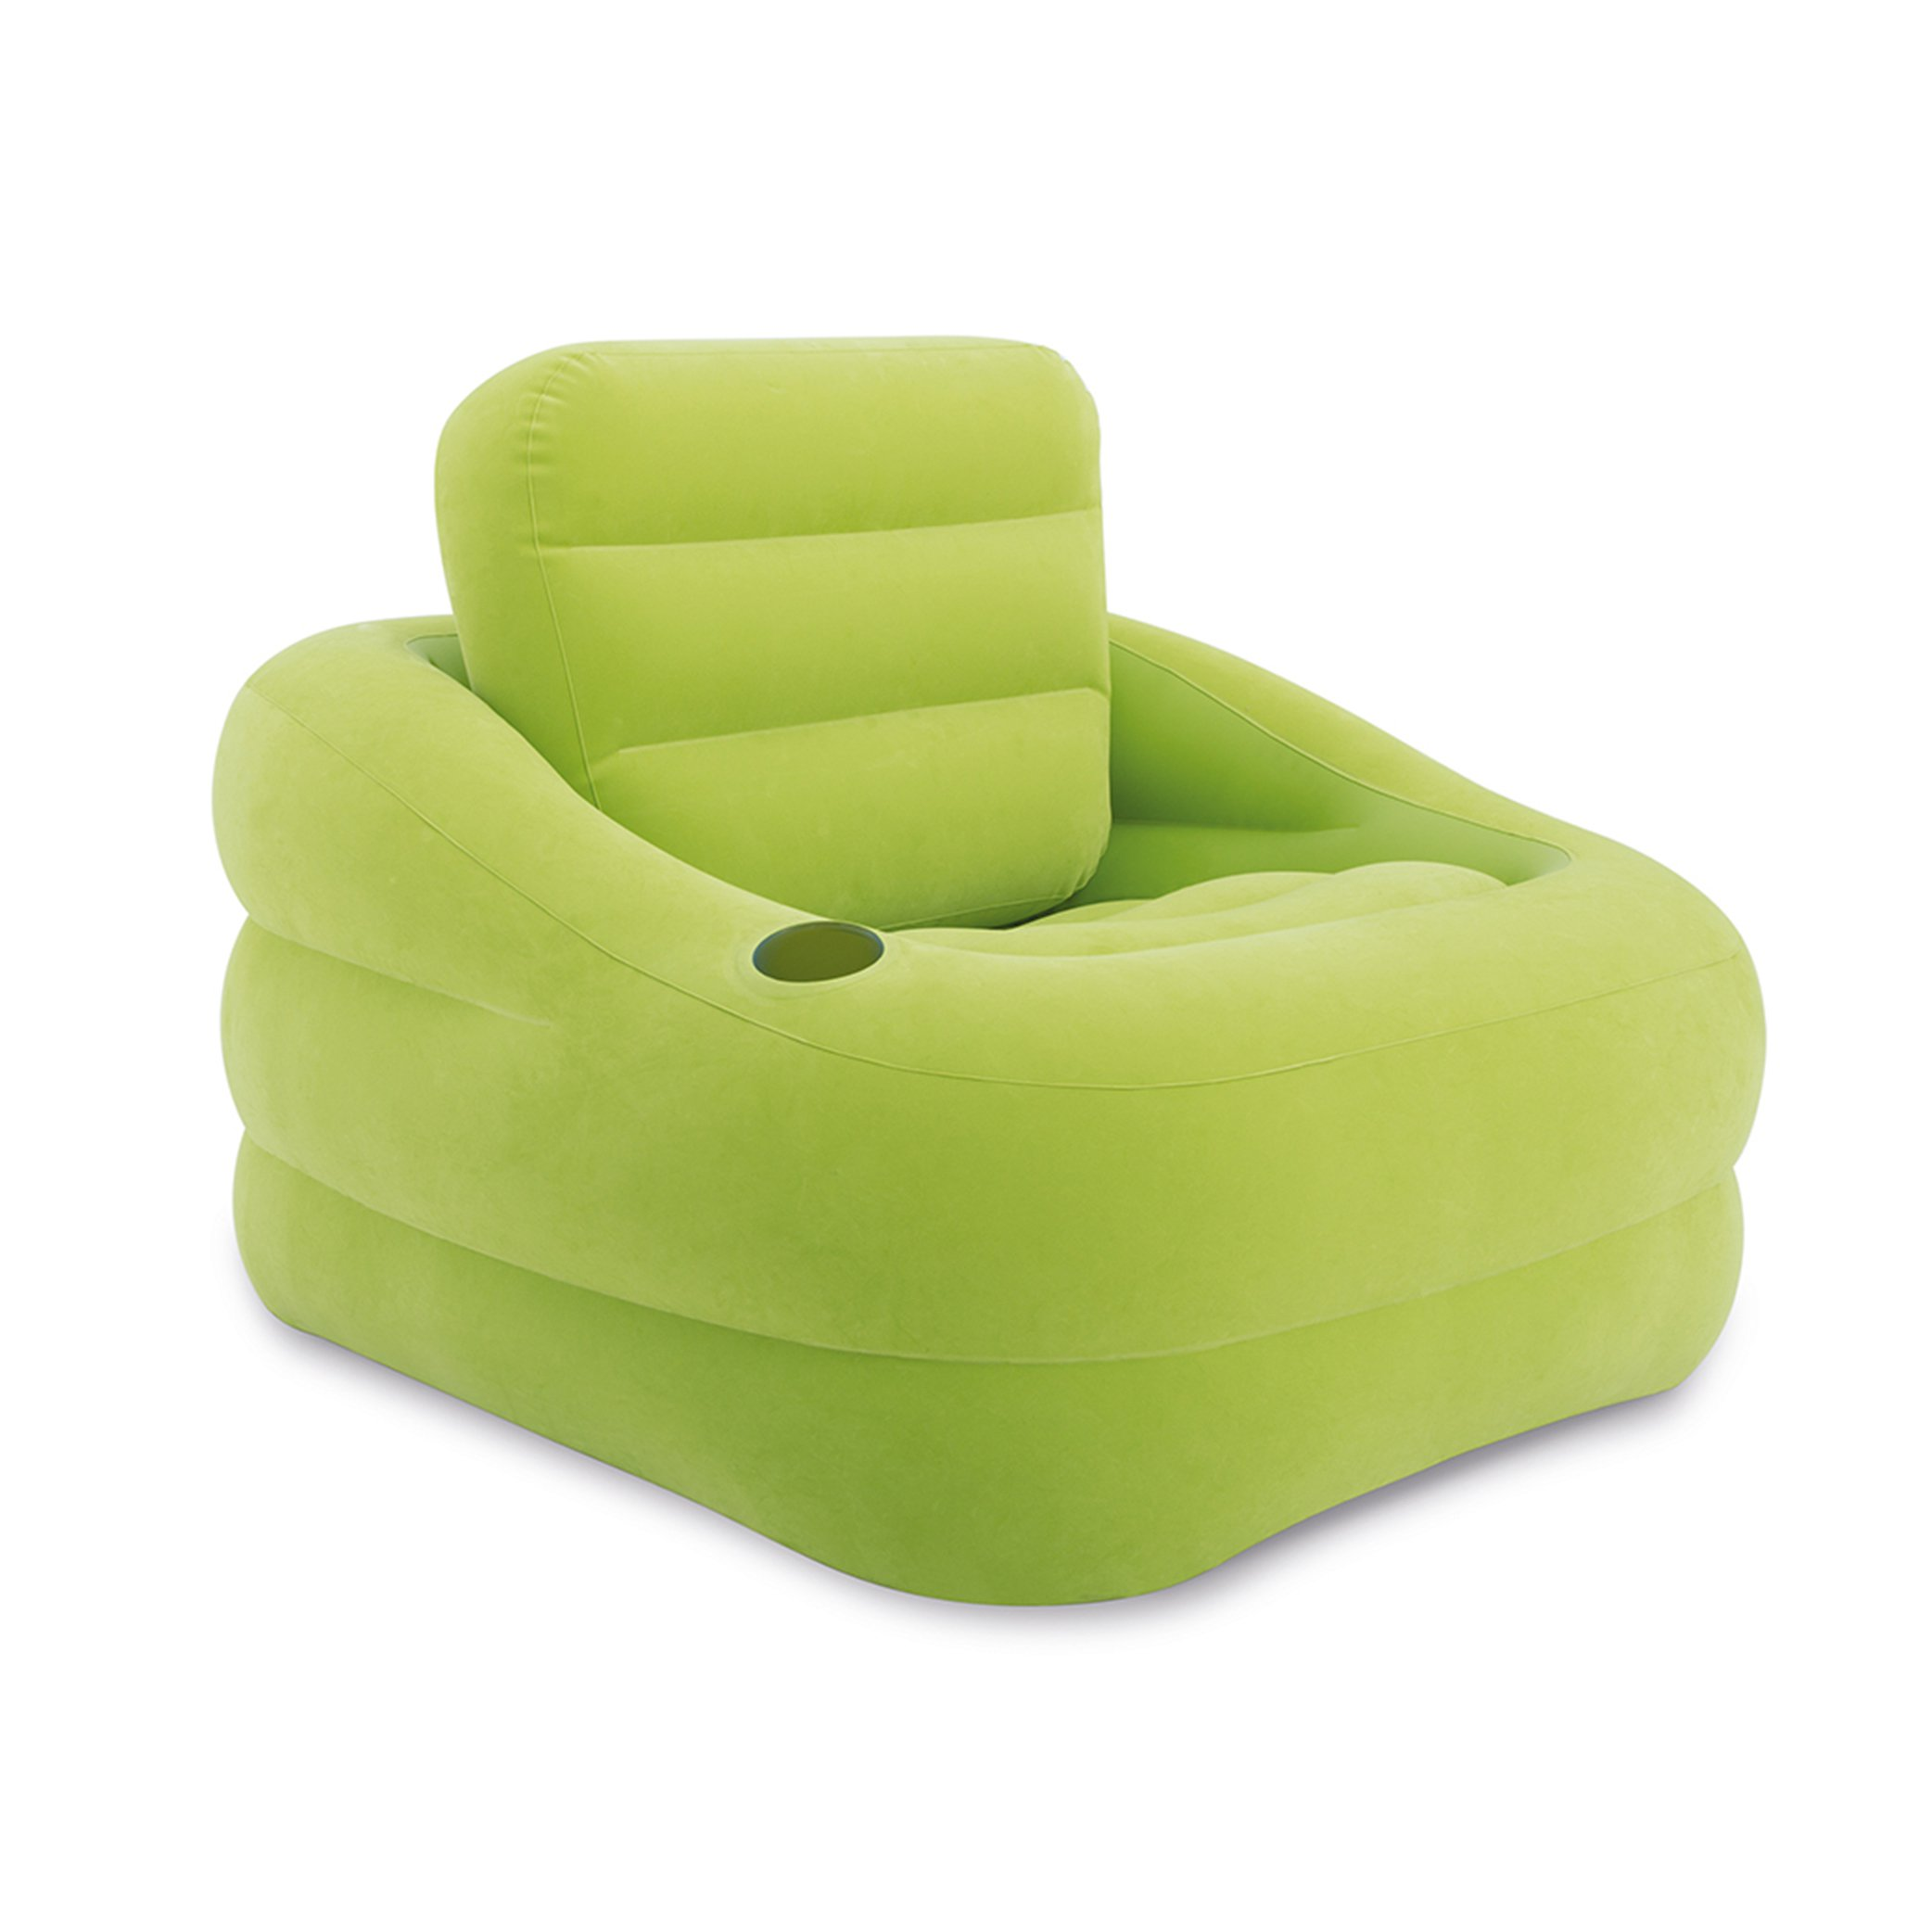 Intex Inflatable Indoor or Outdoor Accent Chair with Cup Holder, Green | 68586EP by Intex